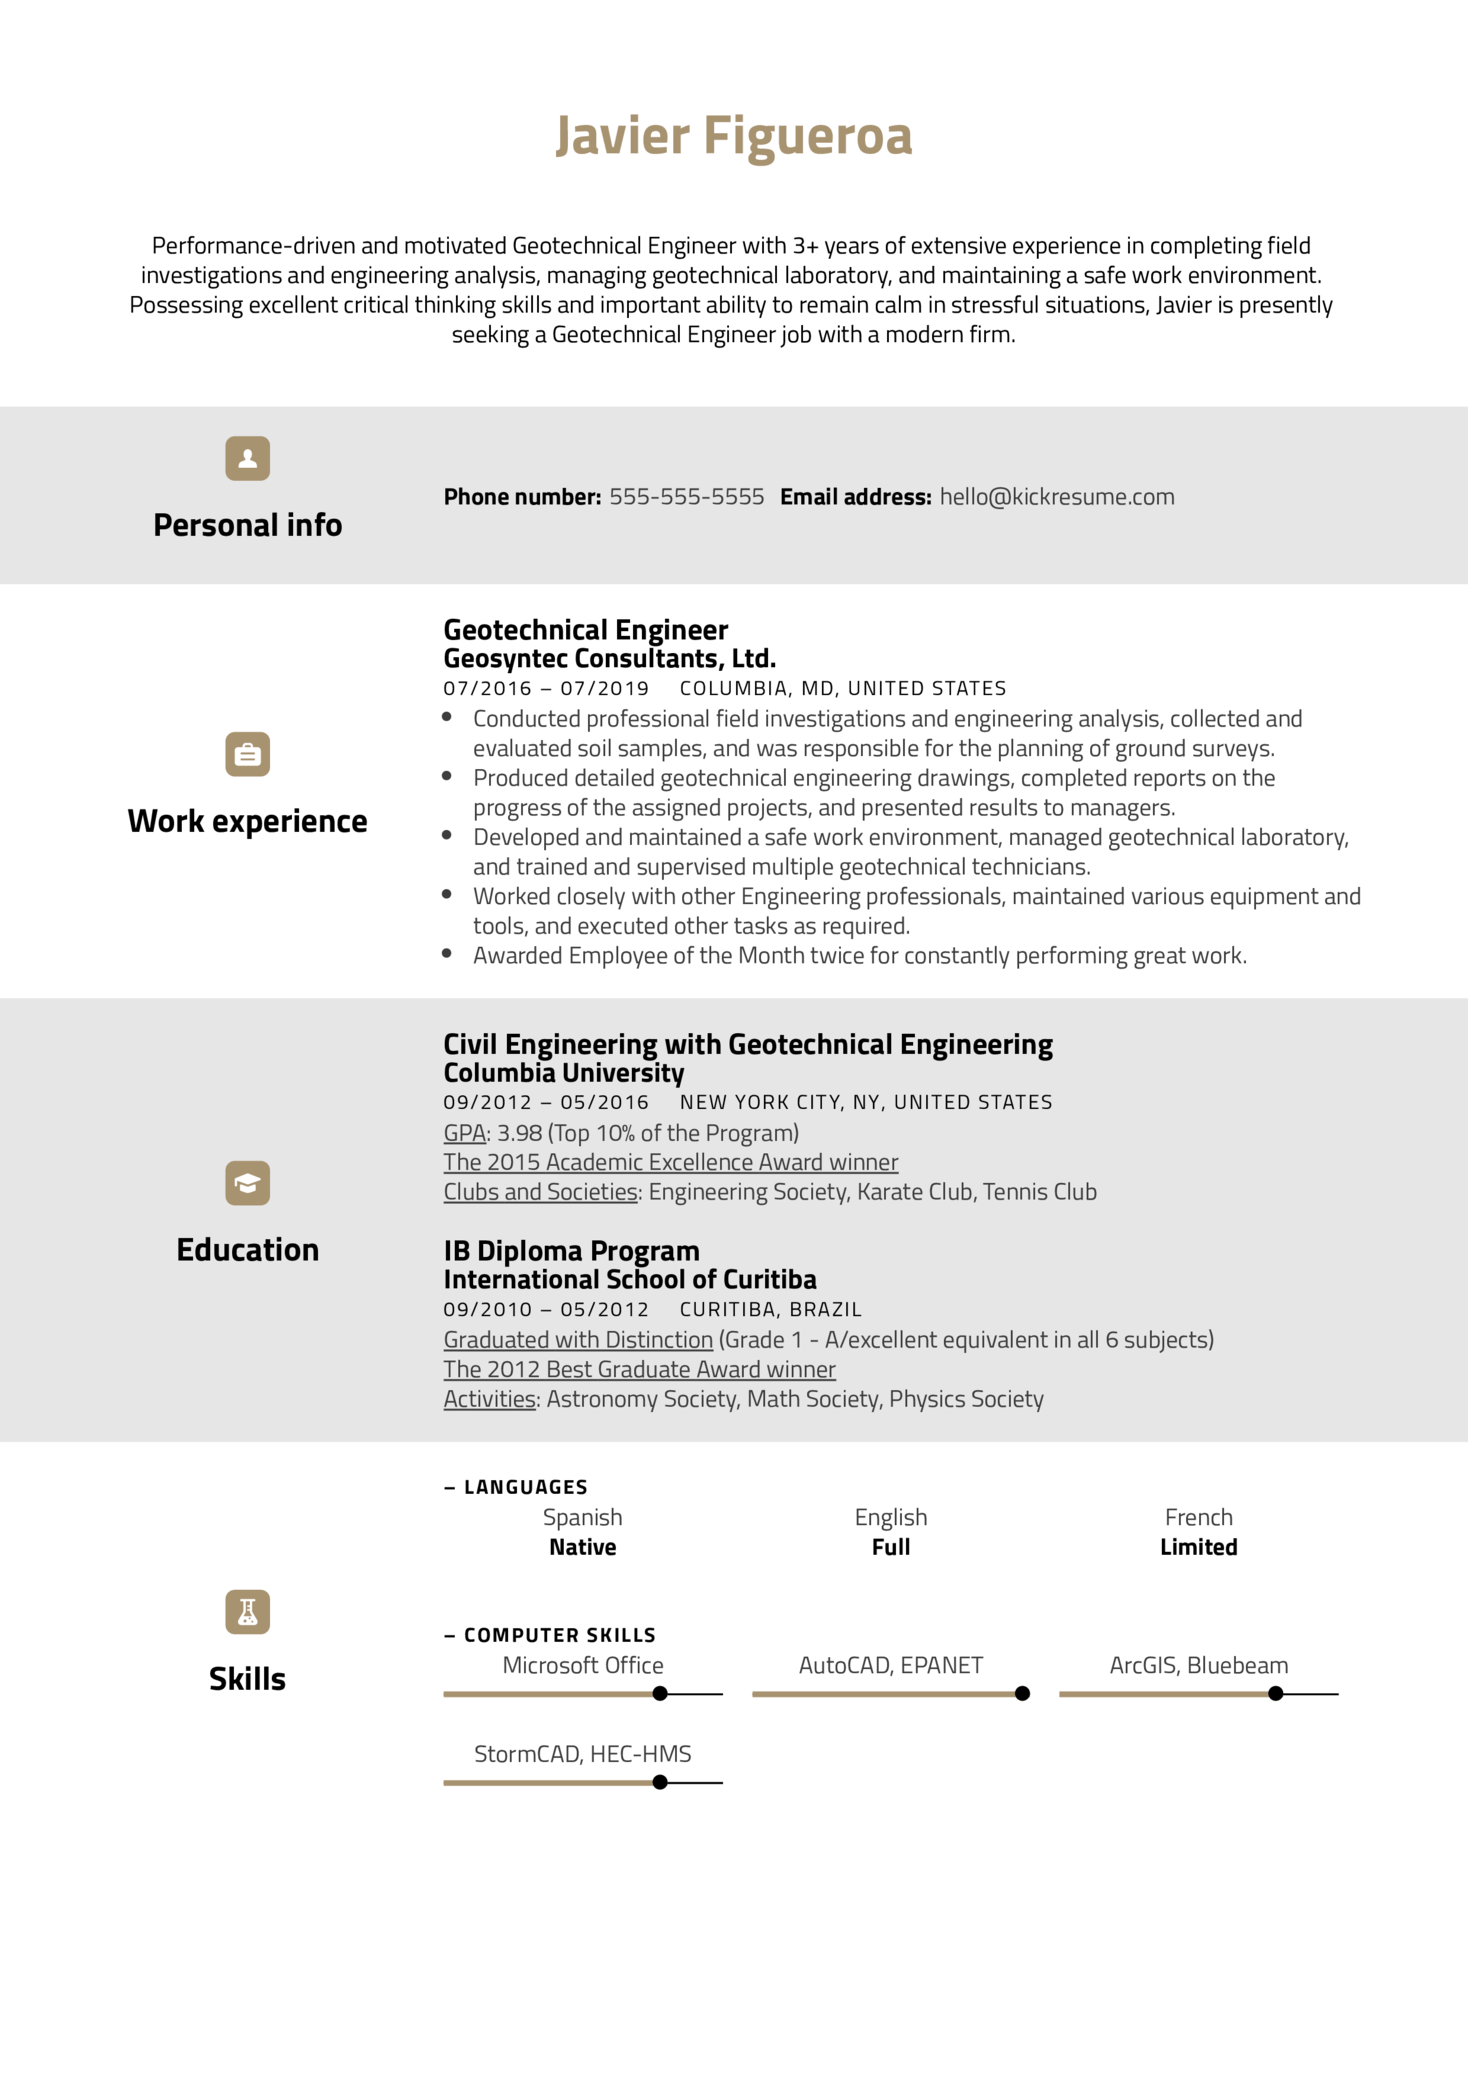 Geotechnical Engineer Resume Example (parte 1)